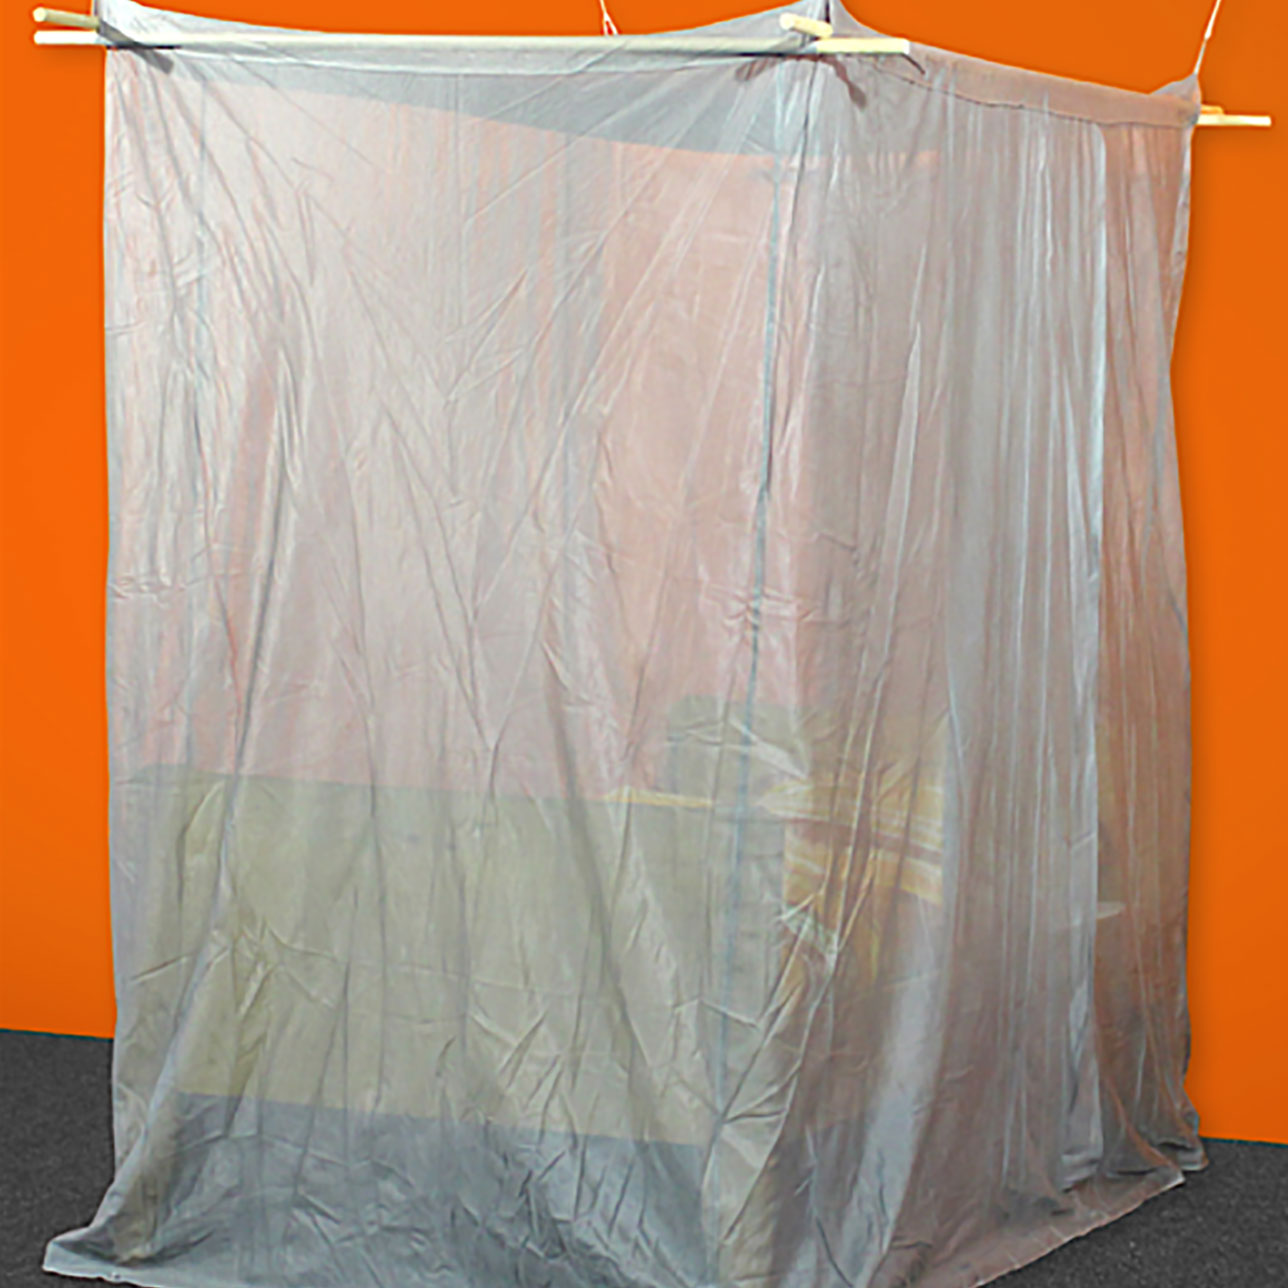 SILVER-TULLE Shielding Canopy for Single Bed (box shape)